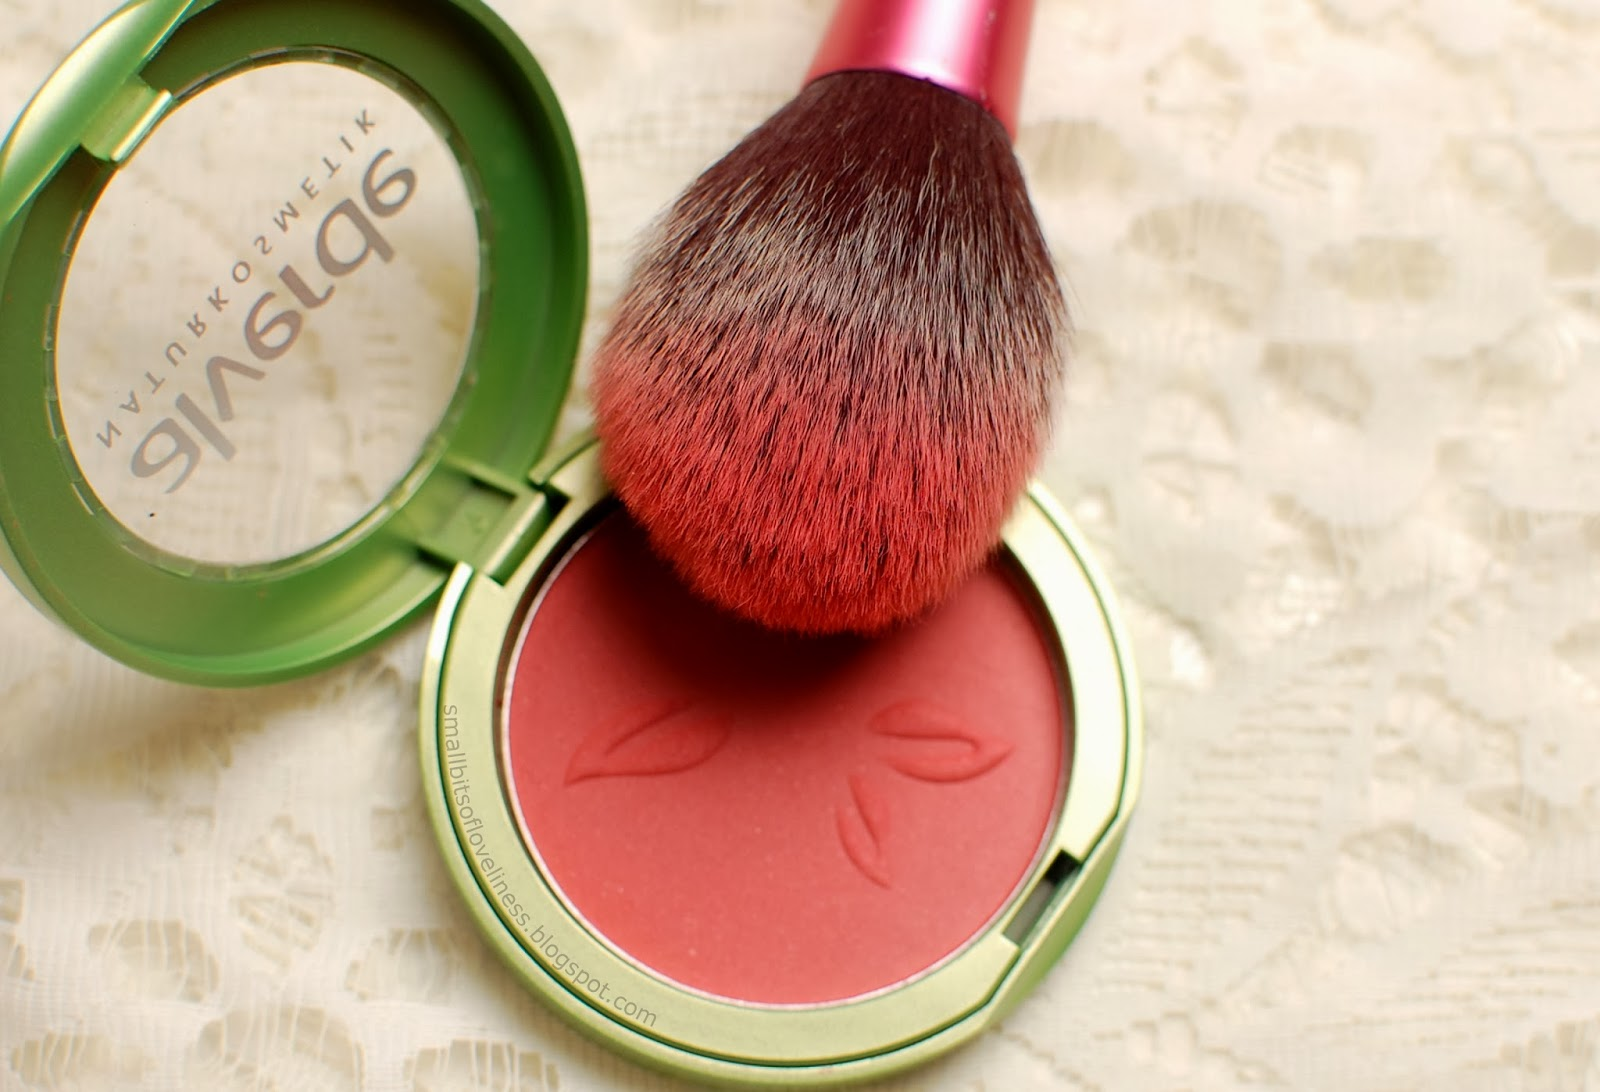 Alverde Blusher Flamingo, Real Techniques Blush Brush